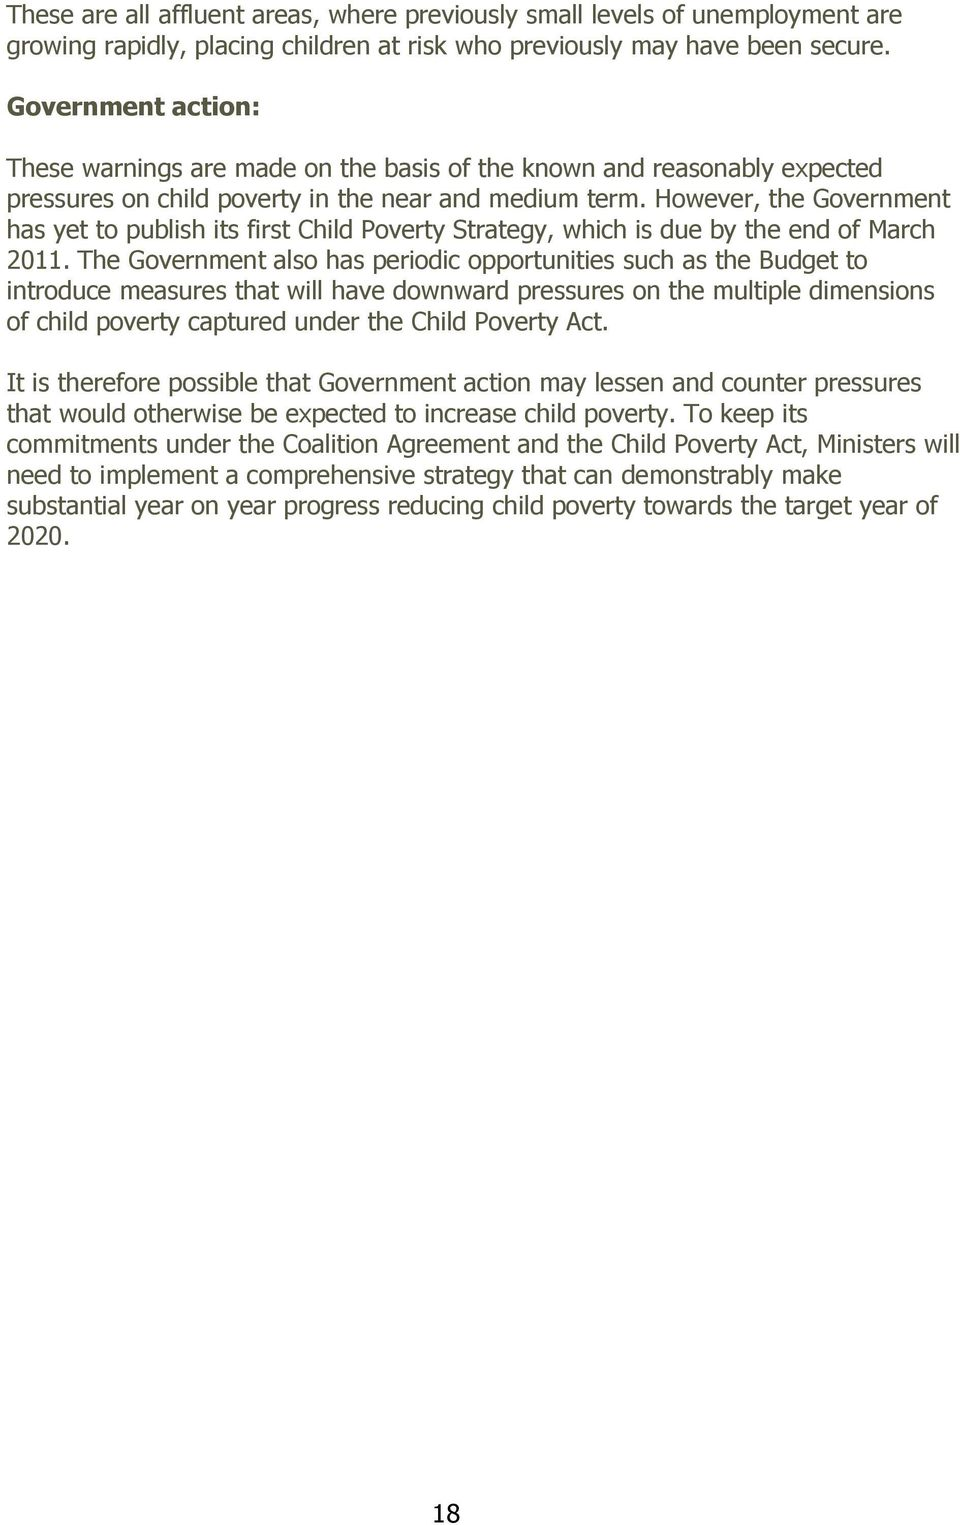 However, the Government has yet to publish its first Child Poverty Strategy, which is due by the end of March 2011.